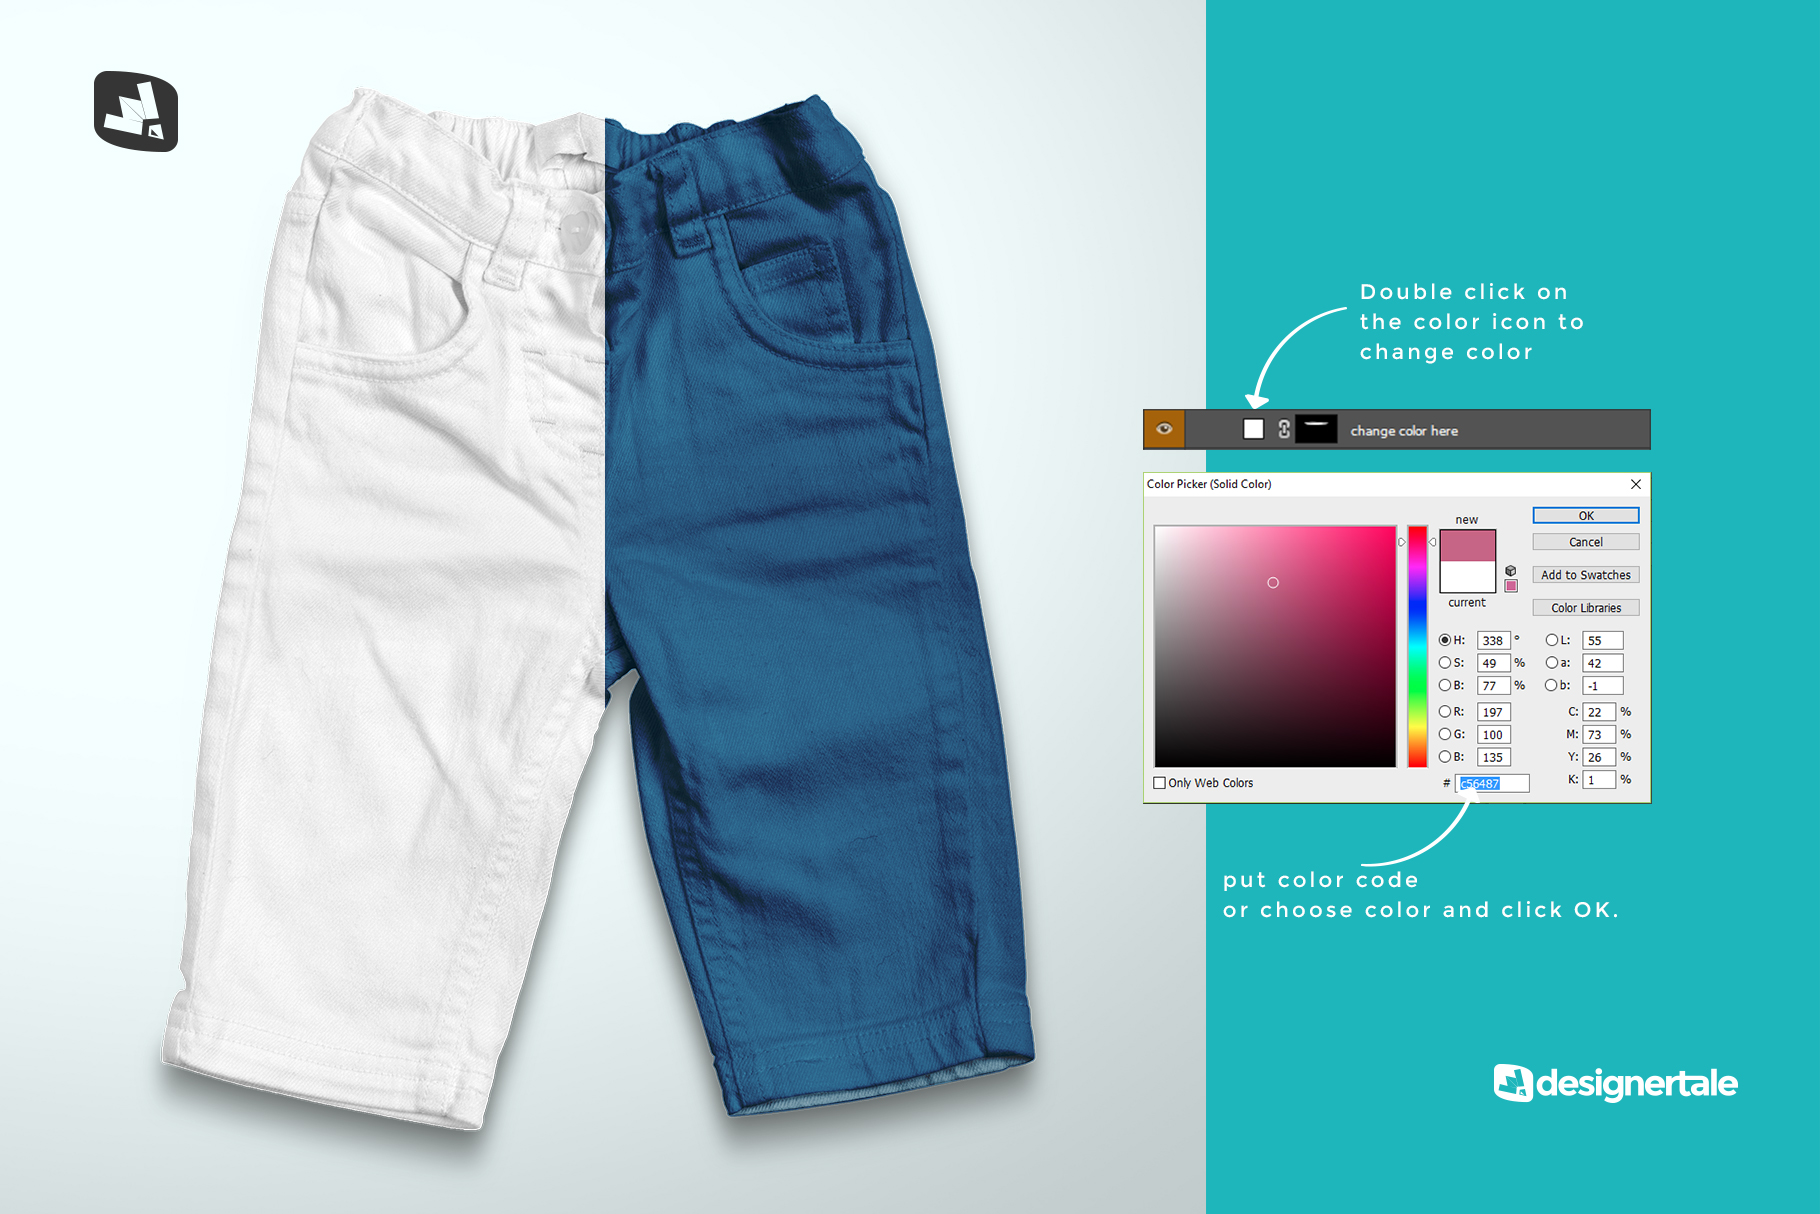 how to change color of the top view kid's jeans mockup